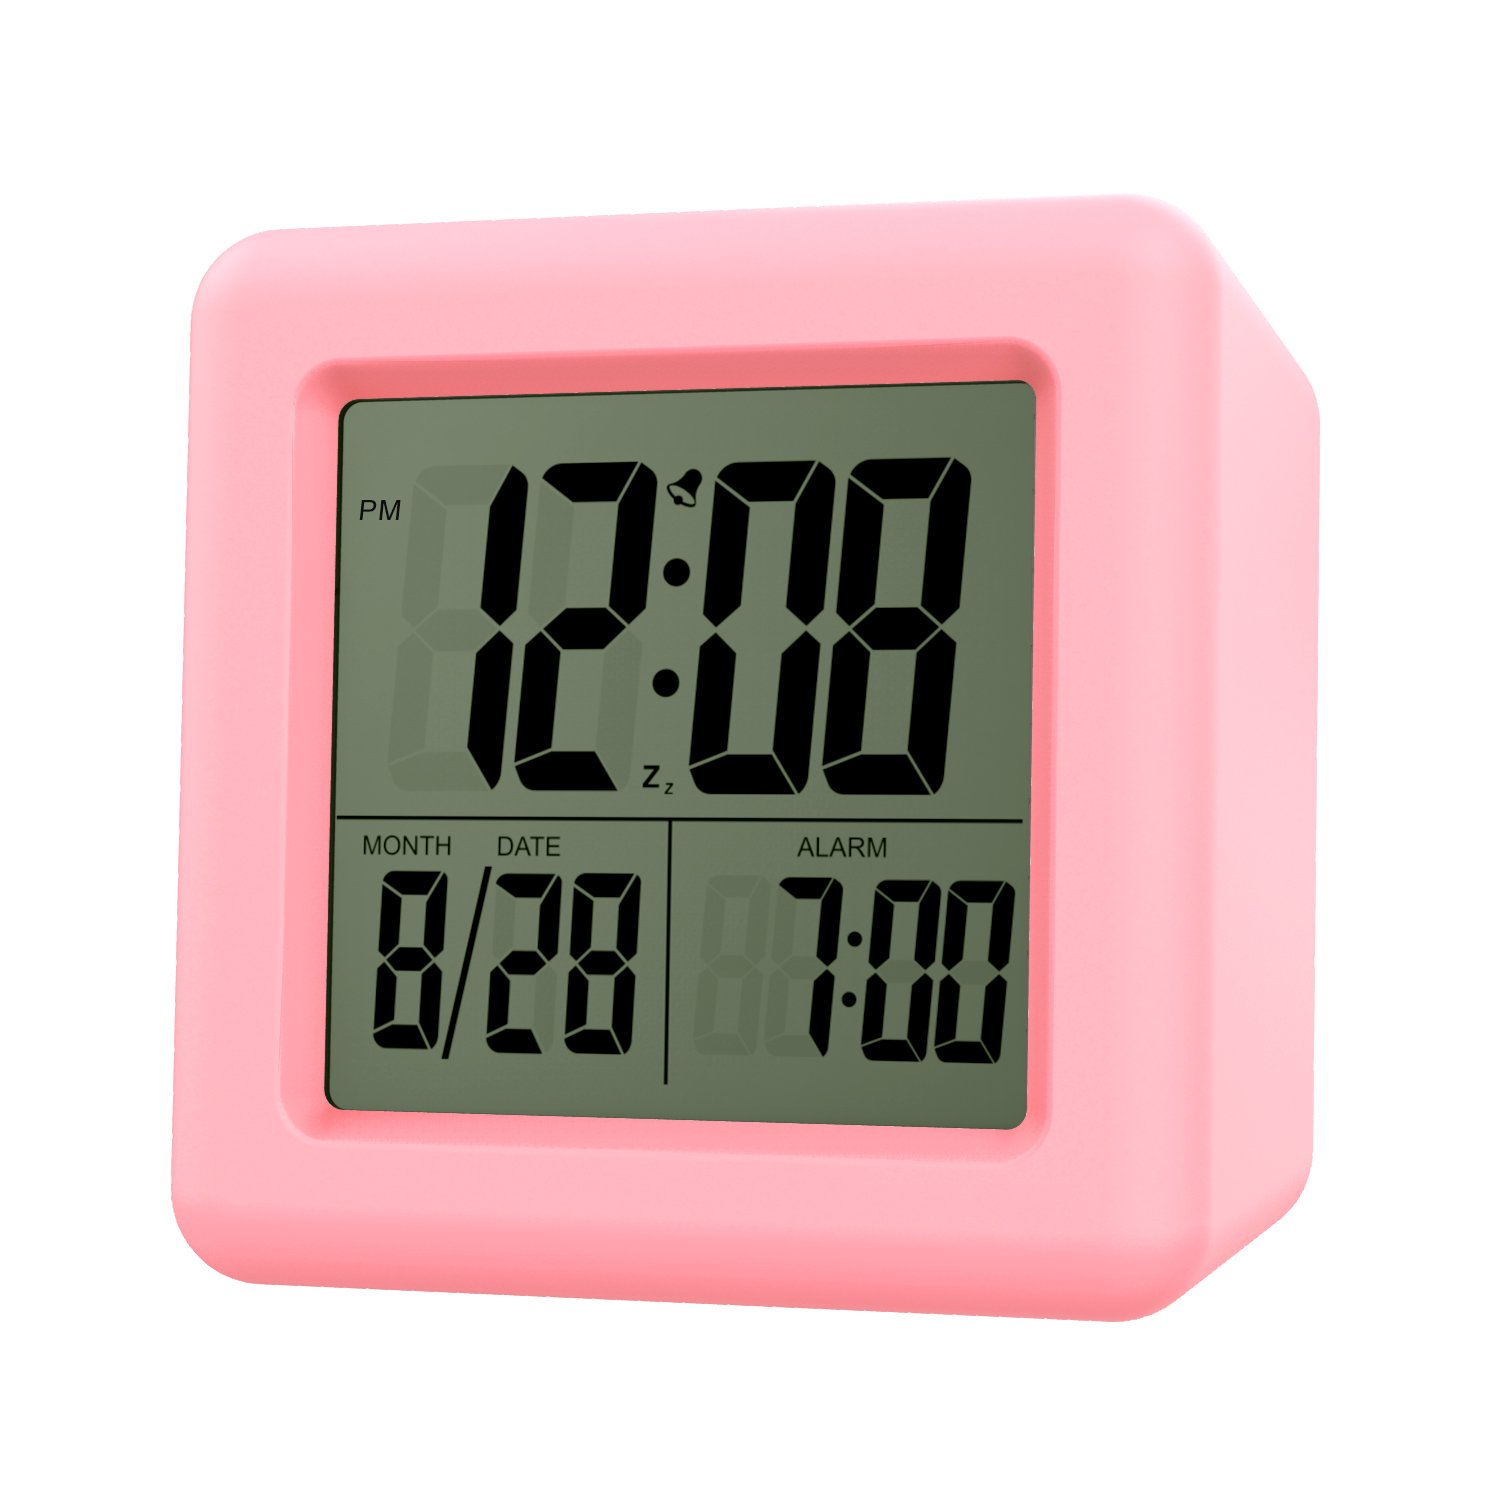 Digital Alarm Clock, Moko Wake up Alarm Table Bedside Clock LCD Display Battery Powered Small Clock with Snooze Function/Calendar/Backlight for Bedroom Home Office - Black 8717BK-11